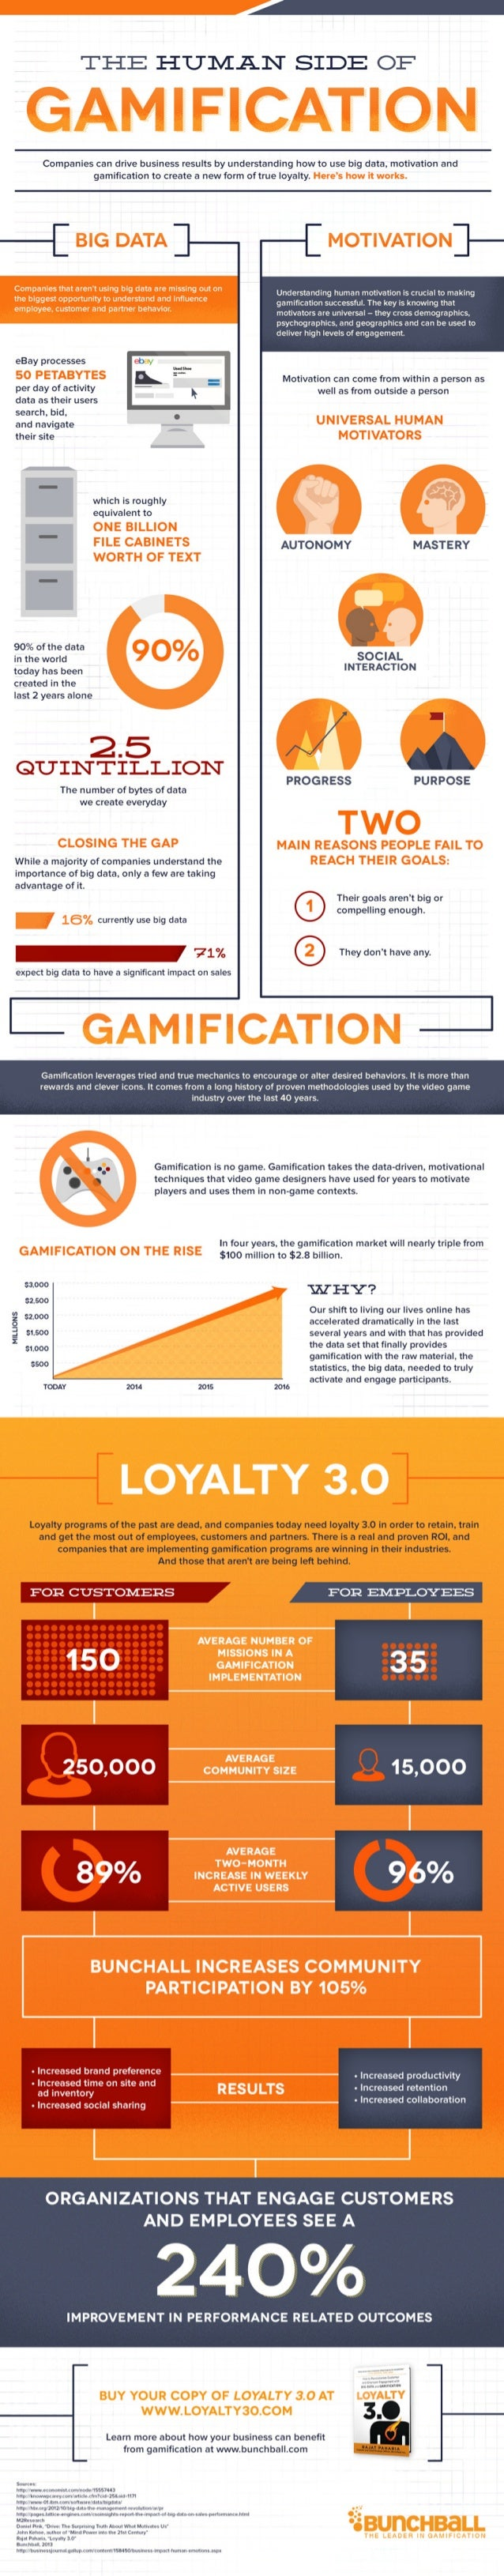 The Human Side of Gamification - Customers can drive business results by understanding big data, motivation, and gamificat...